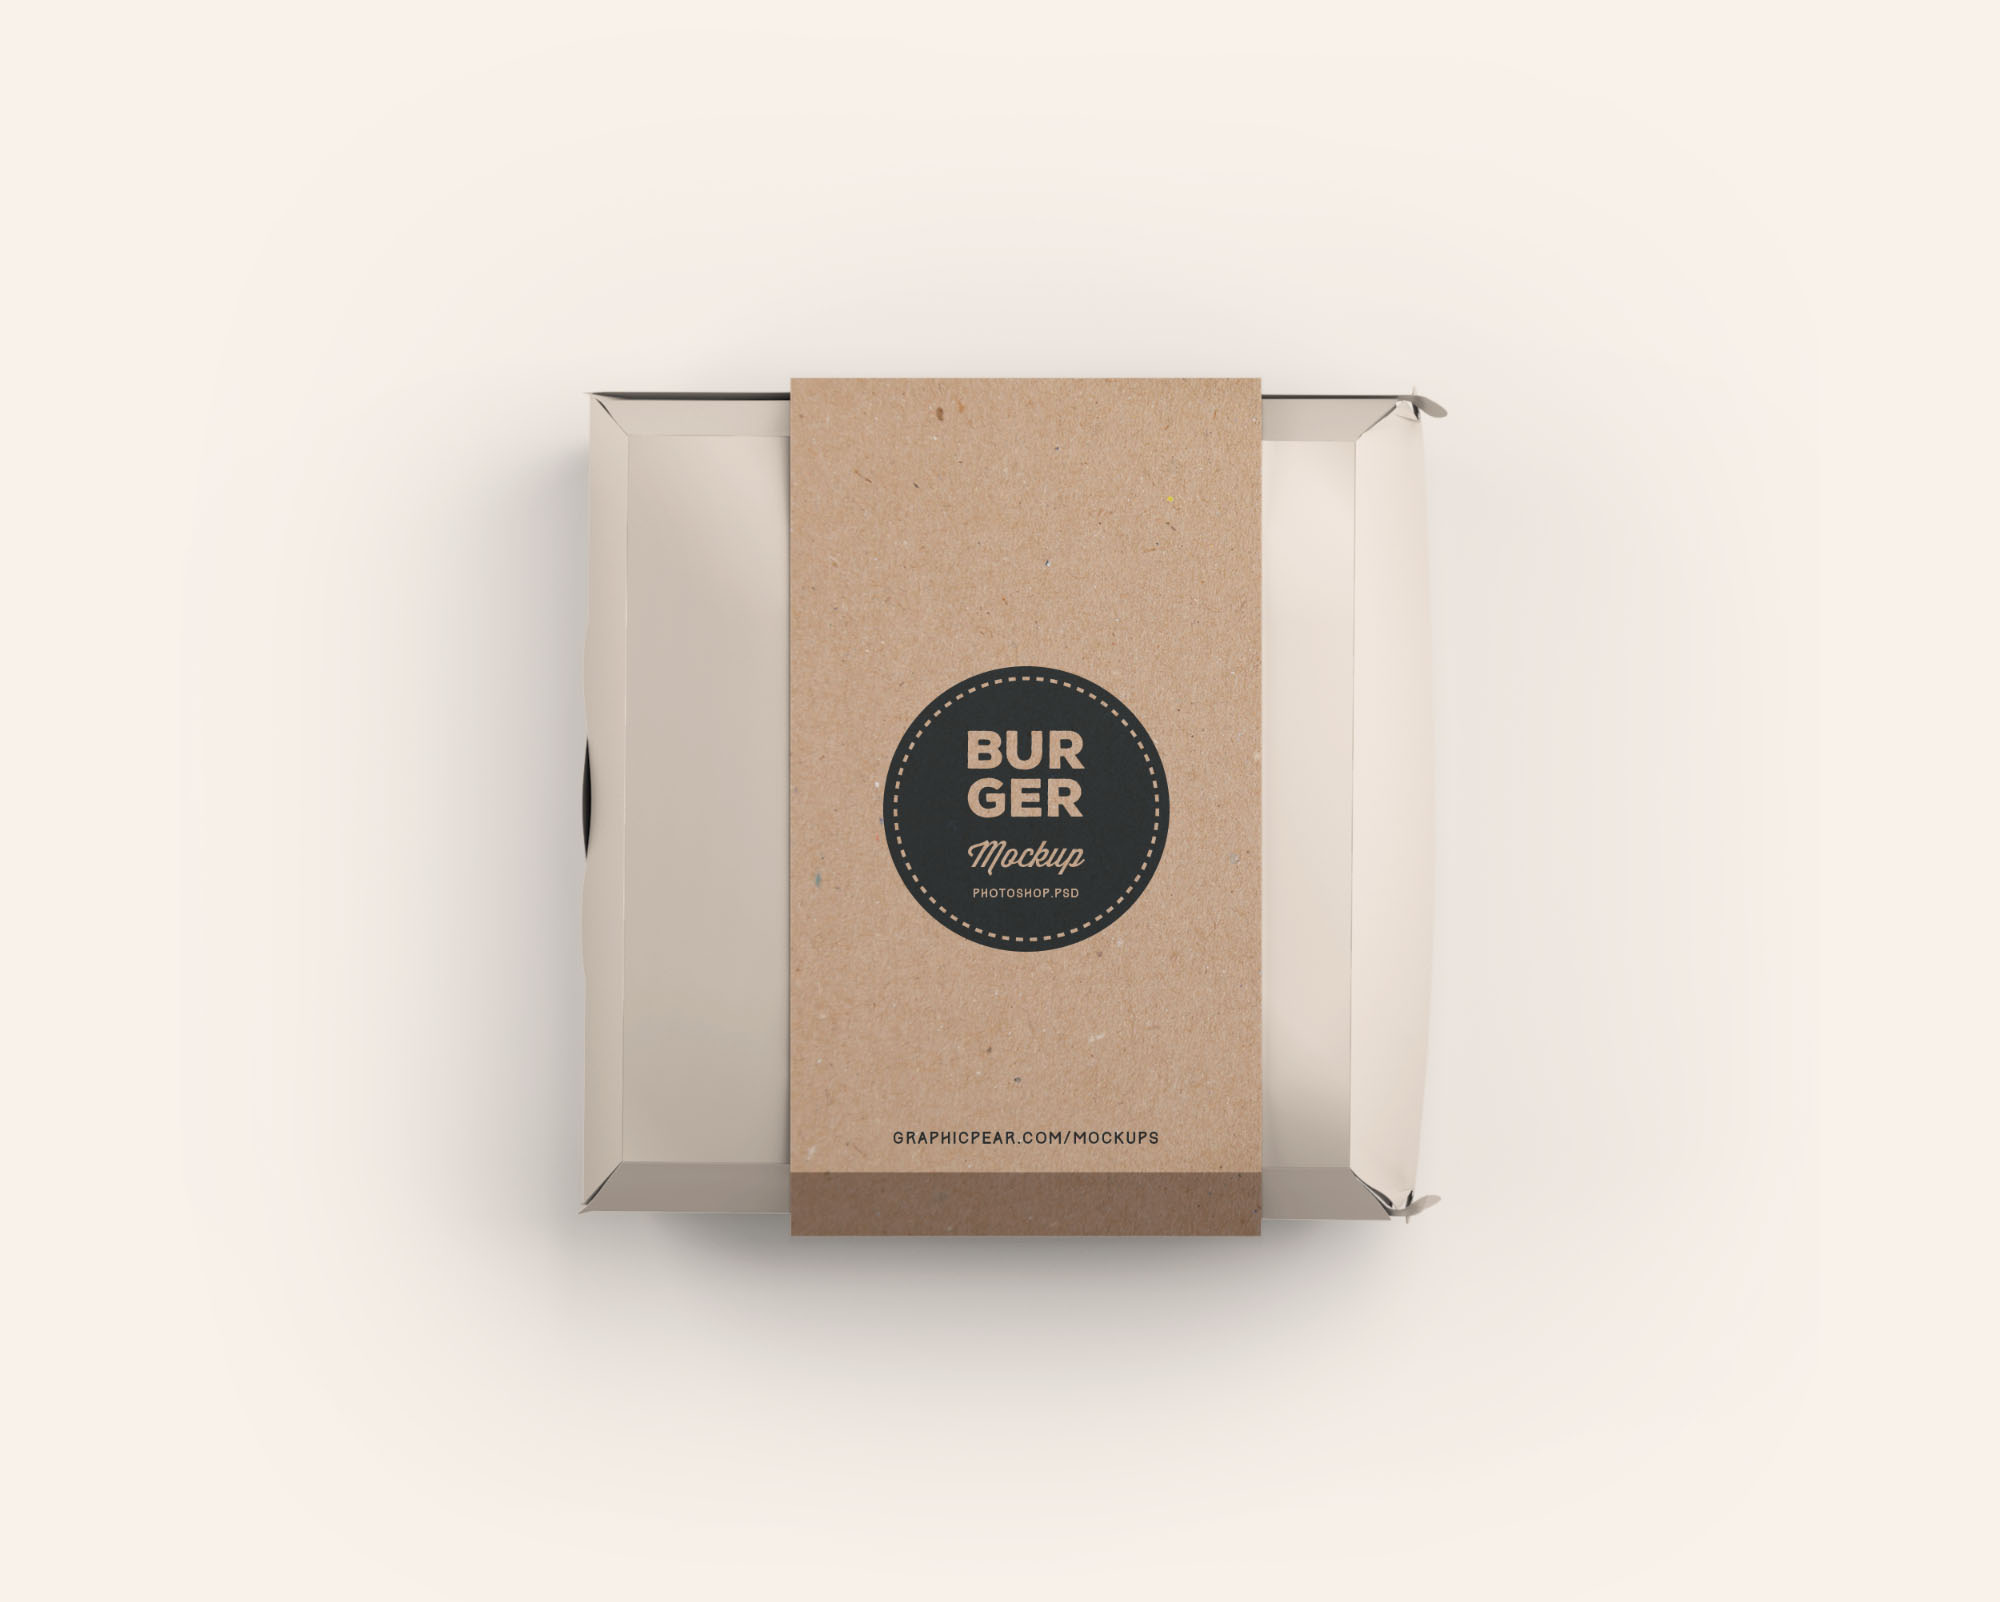 The spines allow for more artwork coverage and the box set has be rotated (natural direction). Burger Box Package Mockup